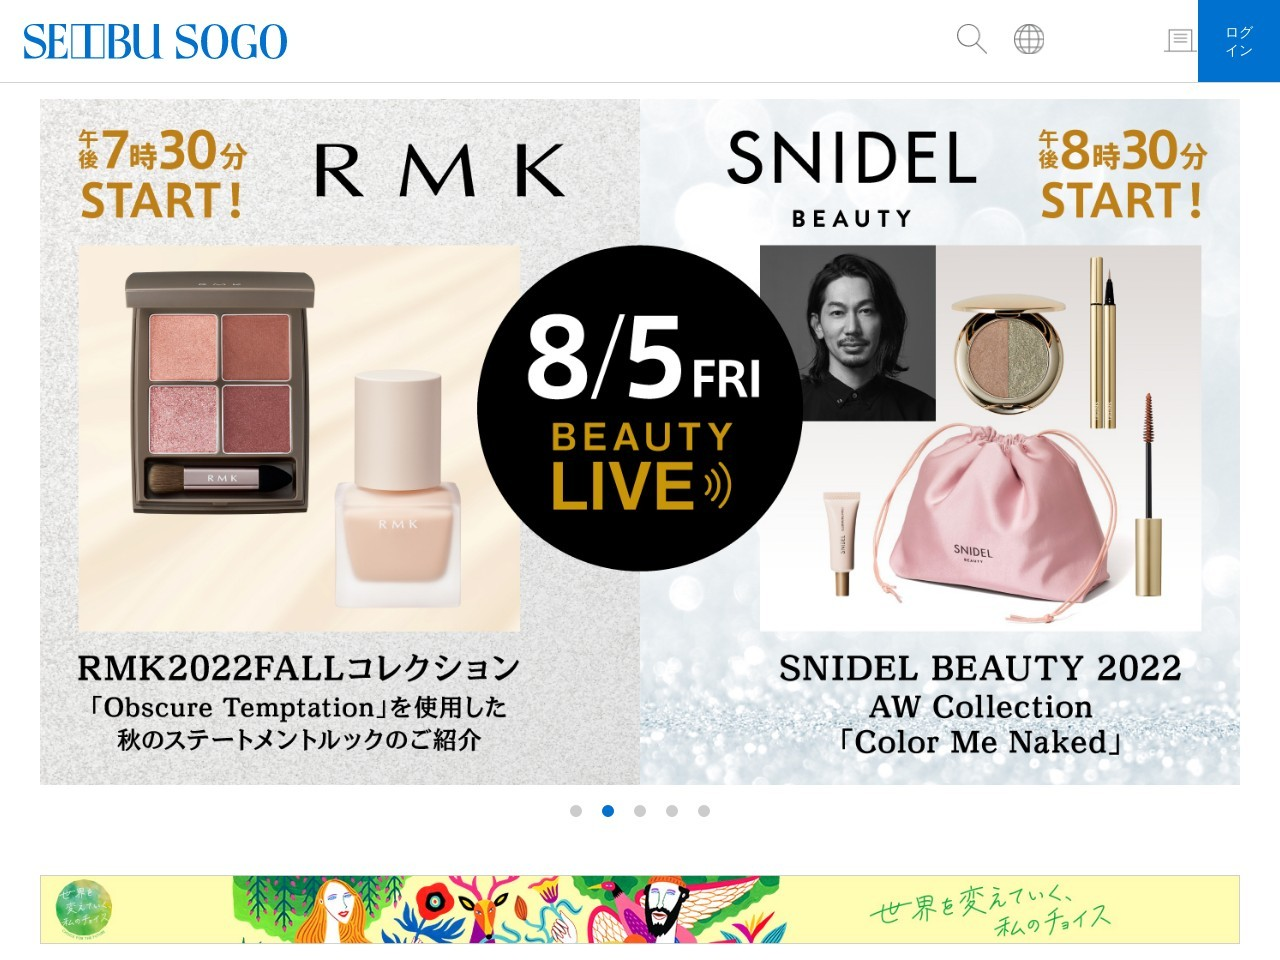 https://www.sogo-seibu.jp/kobe/kakutensublist/?article_seq=264260